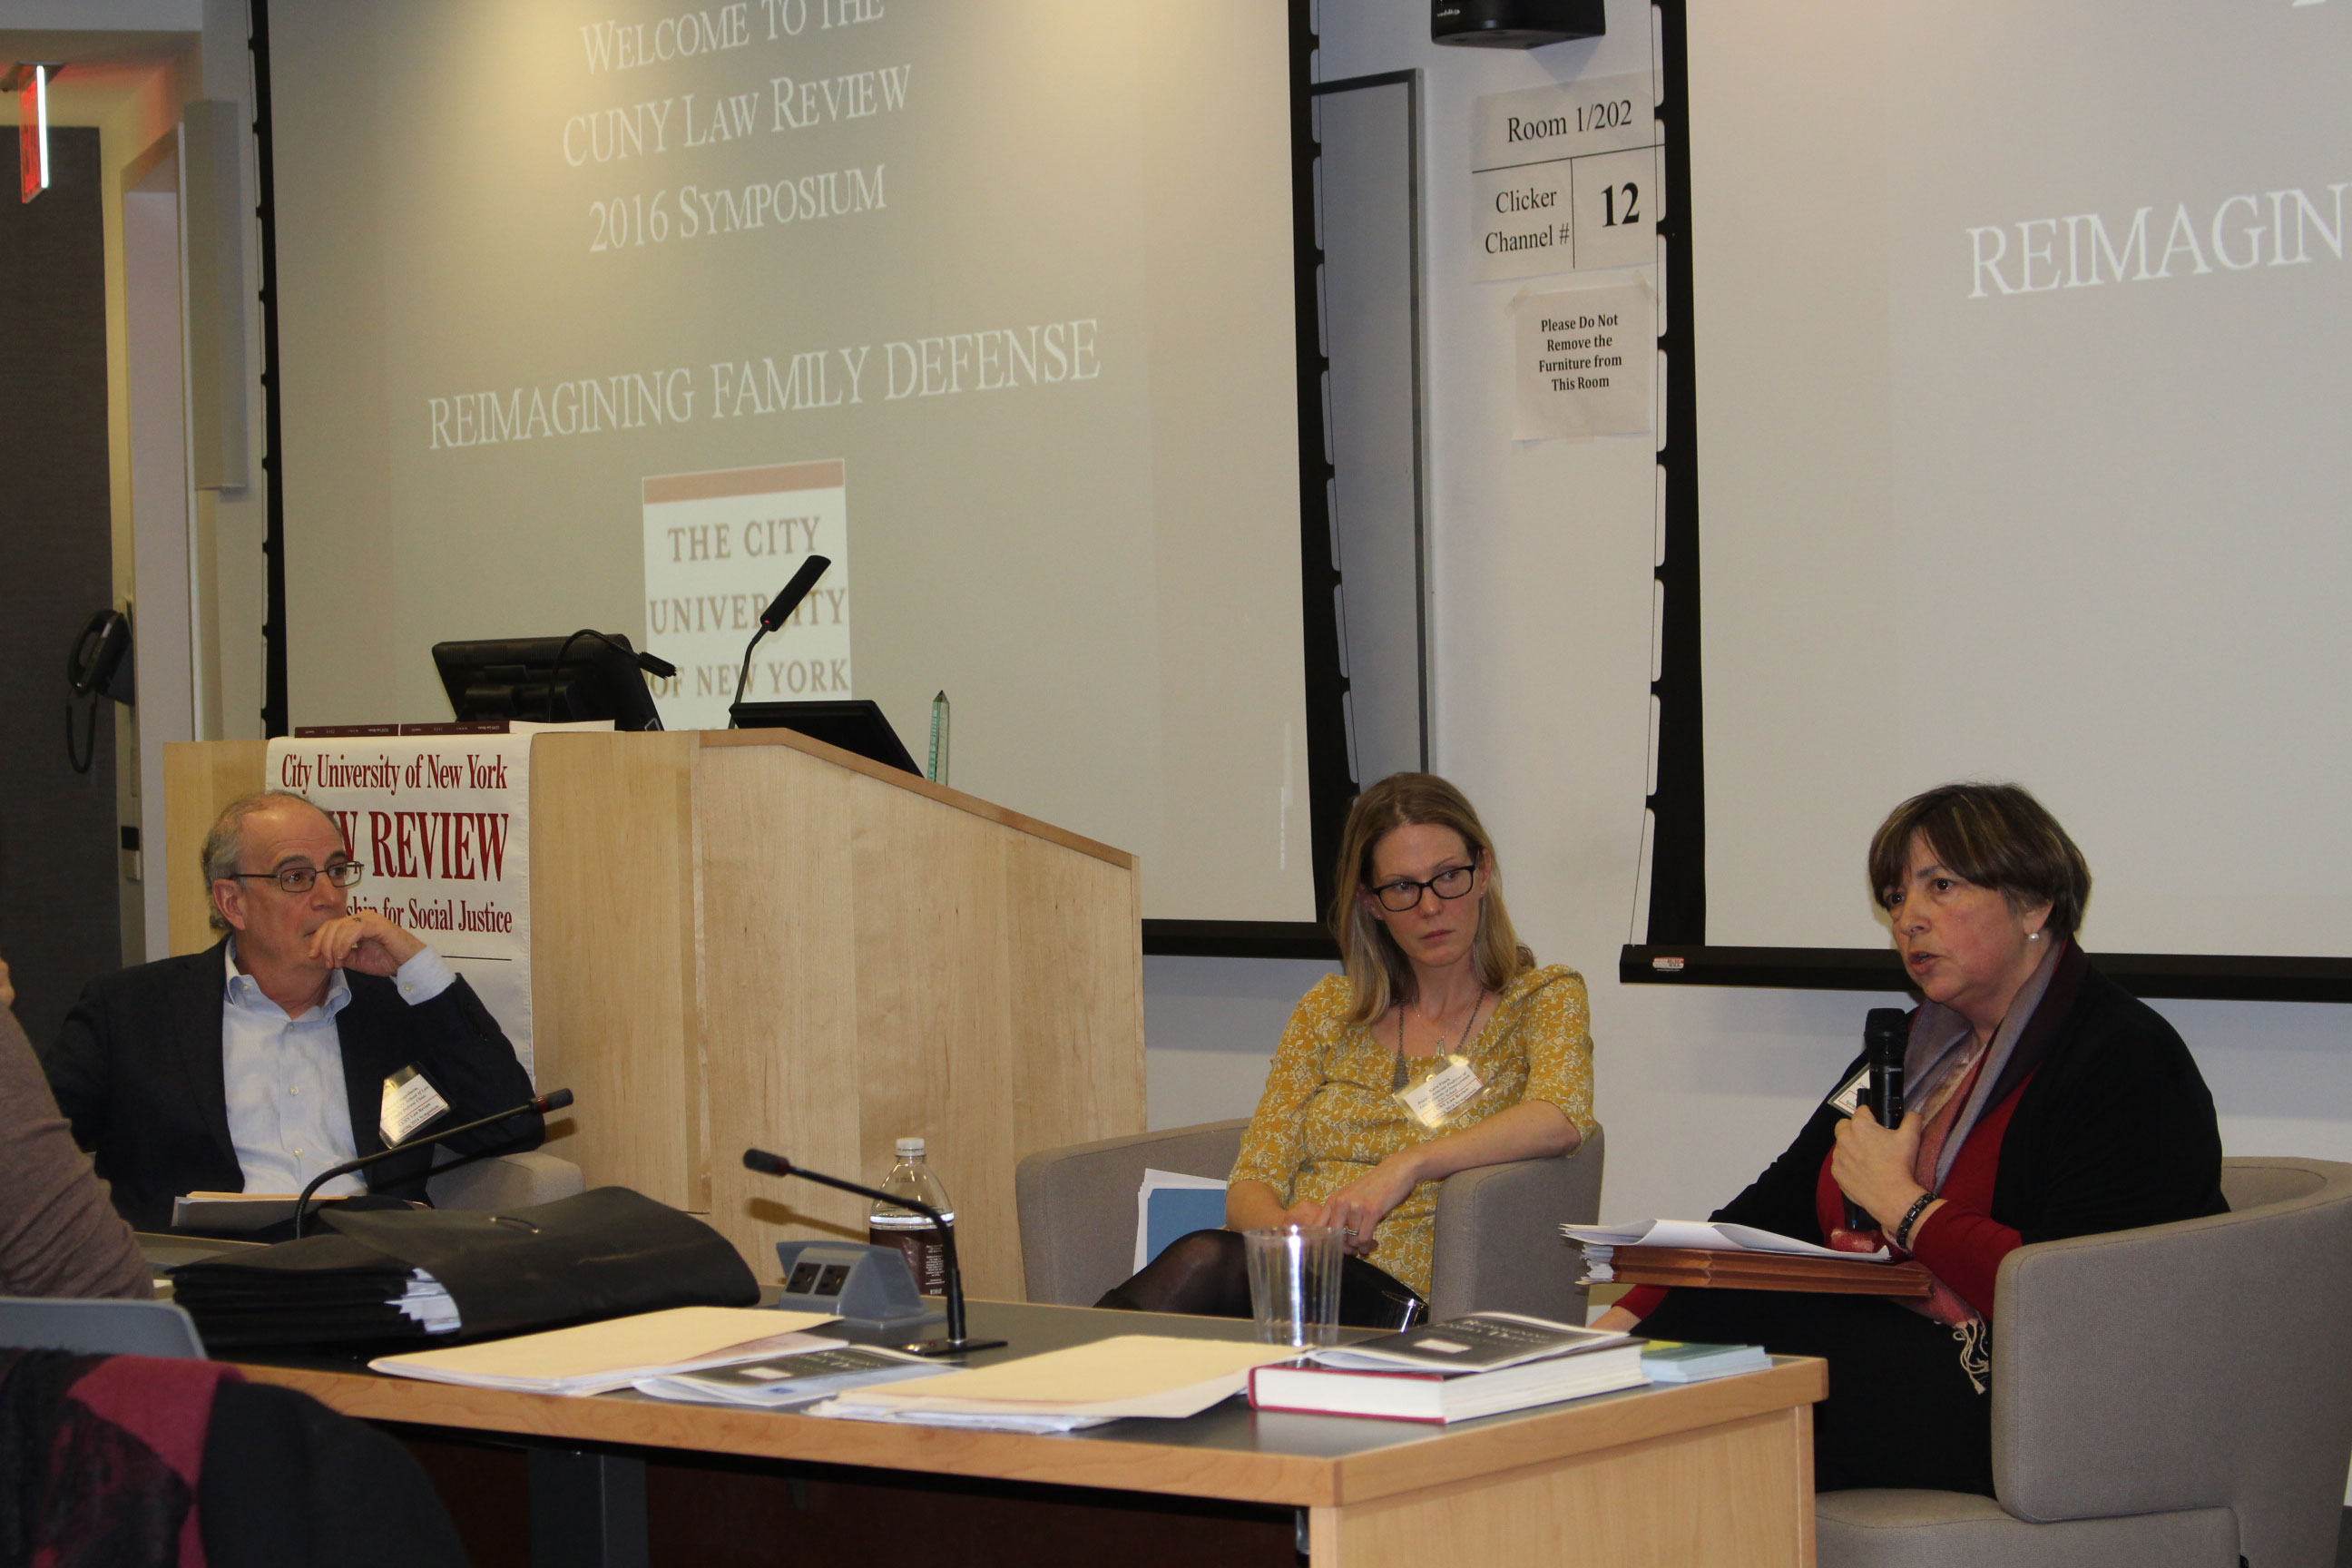 Marty Guggenheim of NYU Law, Kara Finck of Penn Law and Diane Redleaf of the Family Defense Center discuss innovative models of family defense.